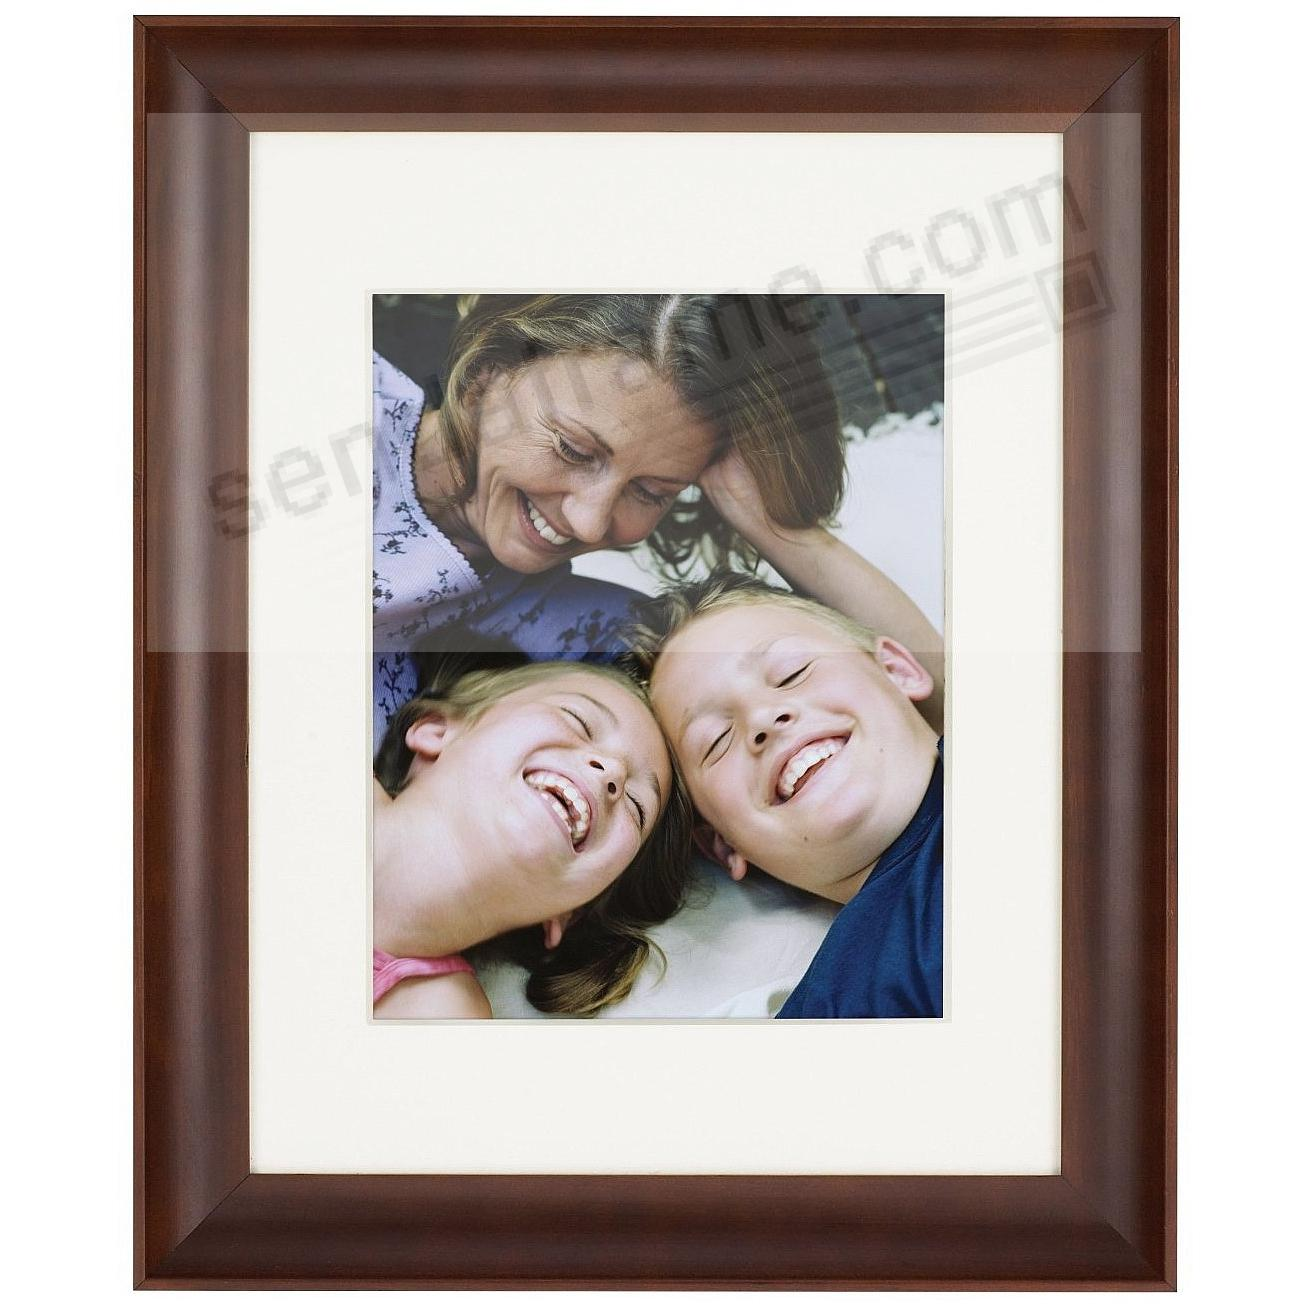 Walnut FAMILY matted scoop profile wood frame 8x10/11x14 from ...